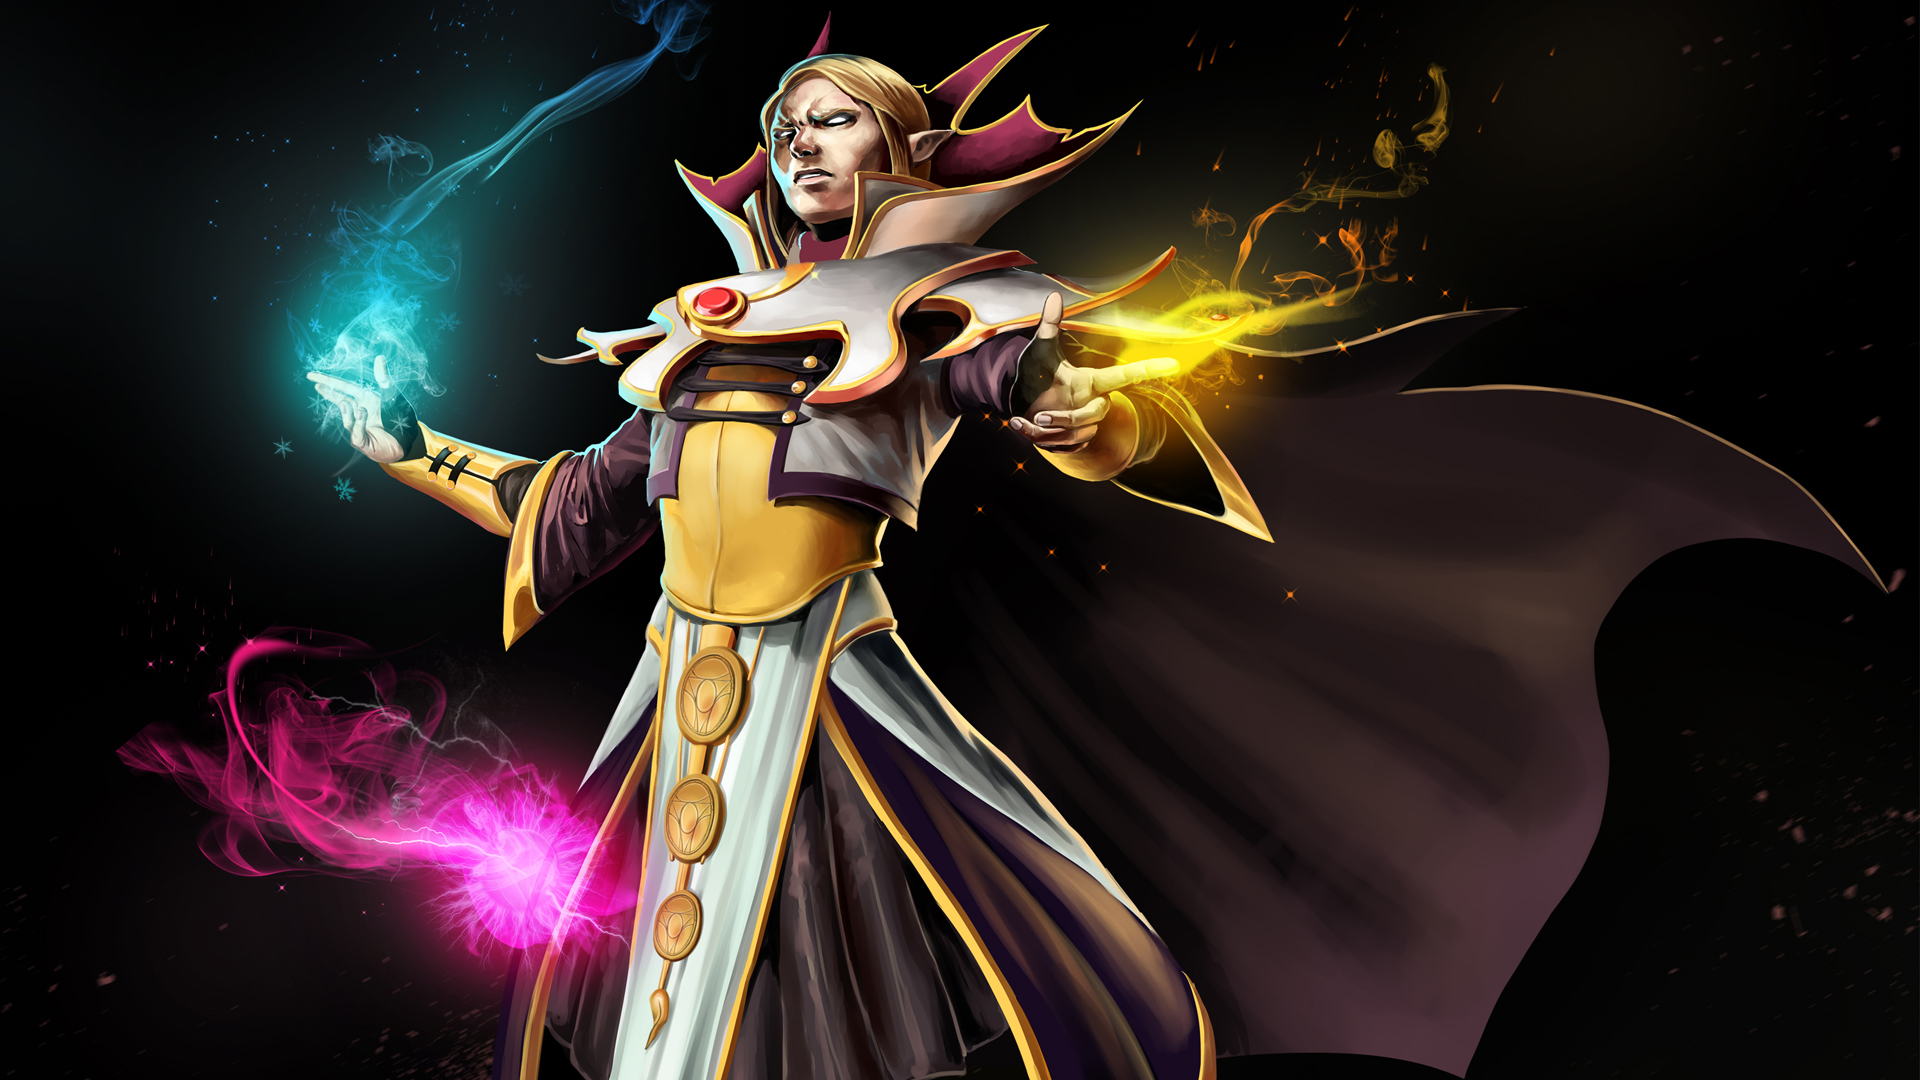 Invoker Dota 2 1920x1080 2i Wallpaper HD